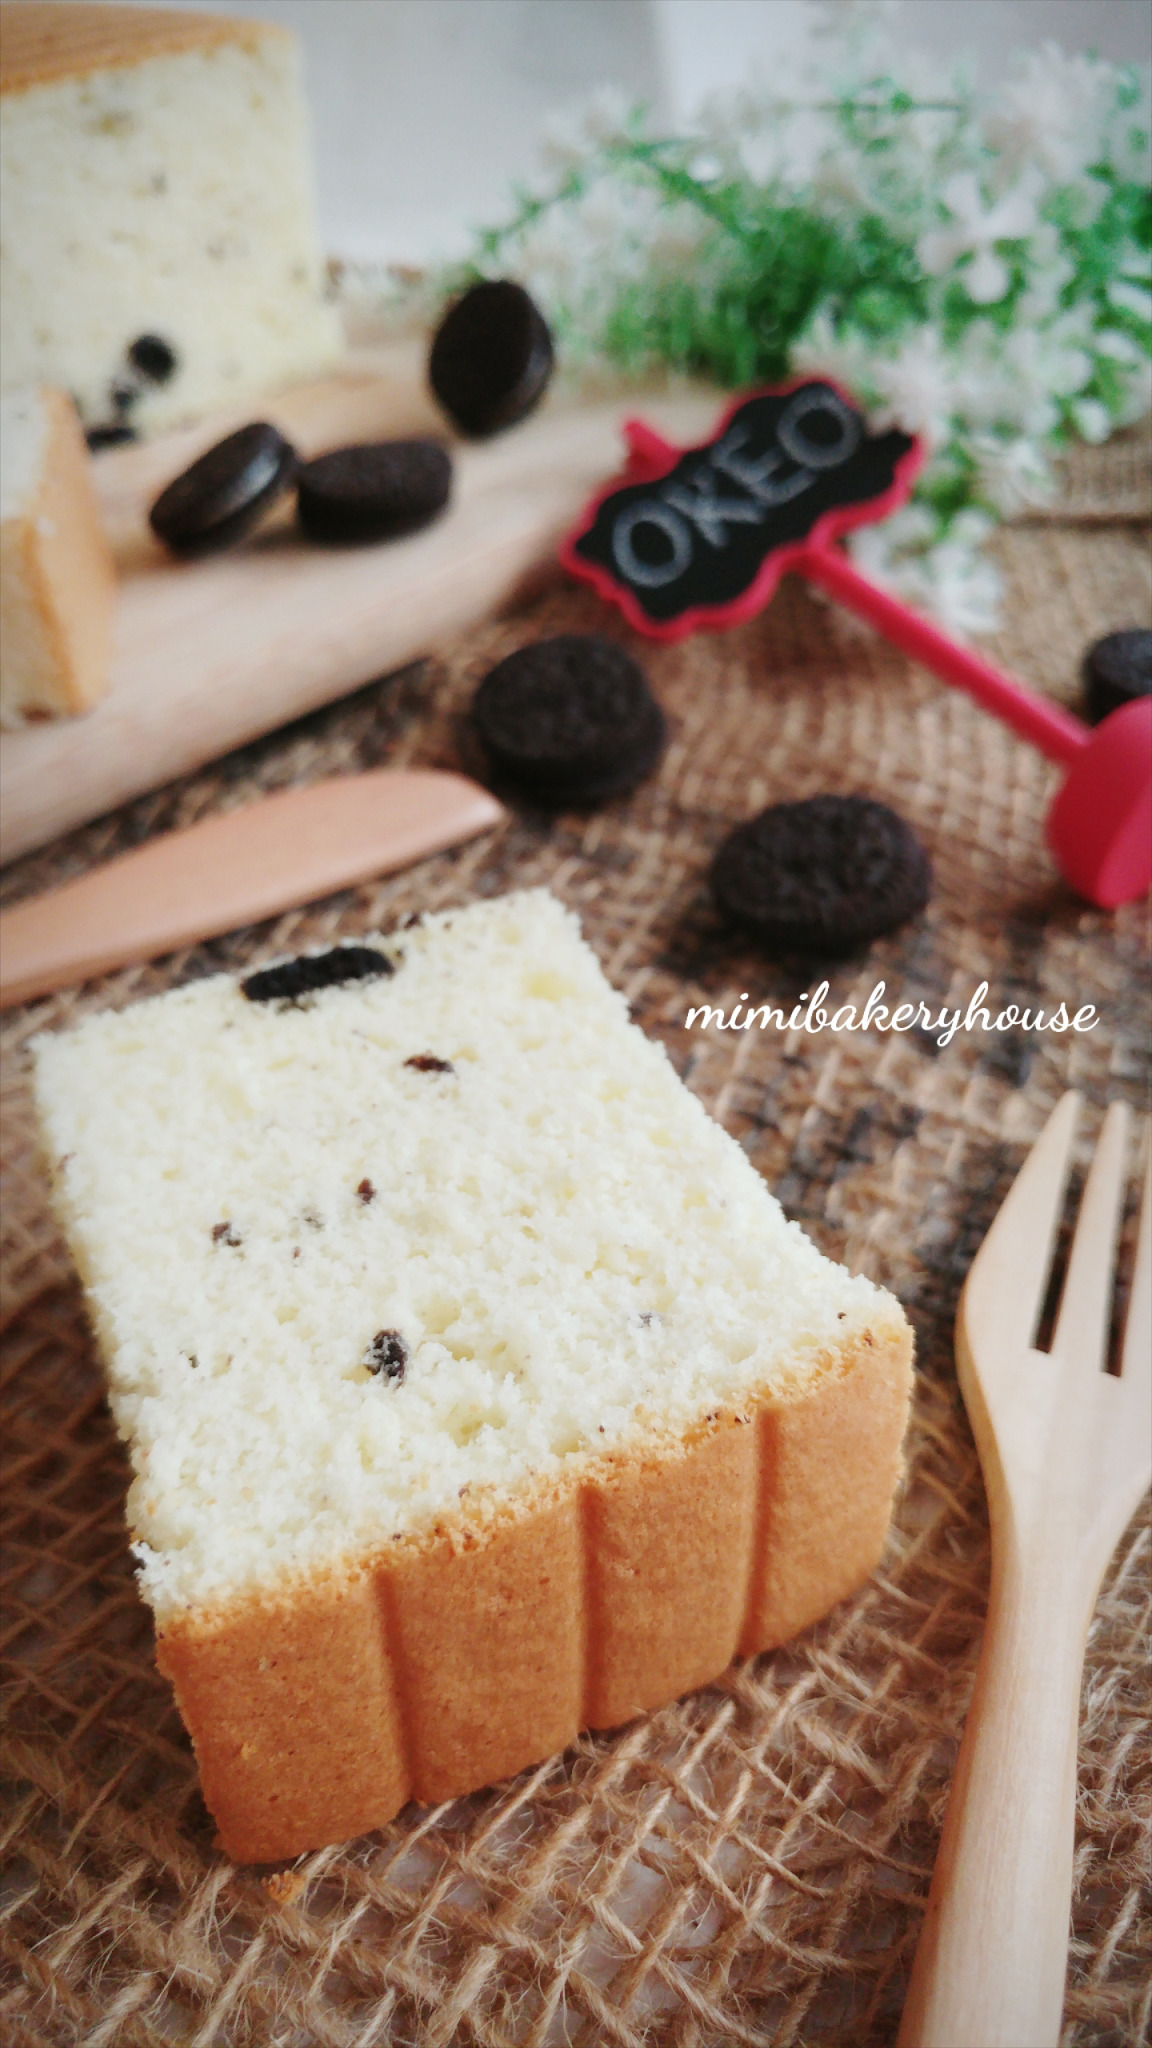 Oreo Cheese Ogura Cake [09 Jun 2016]